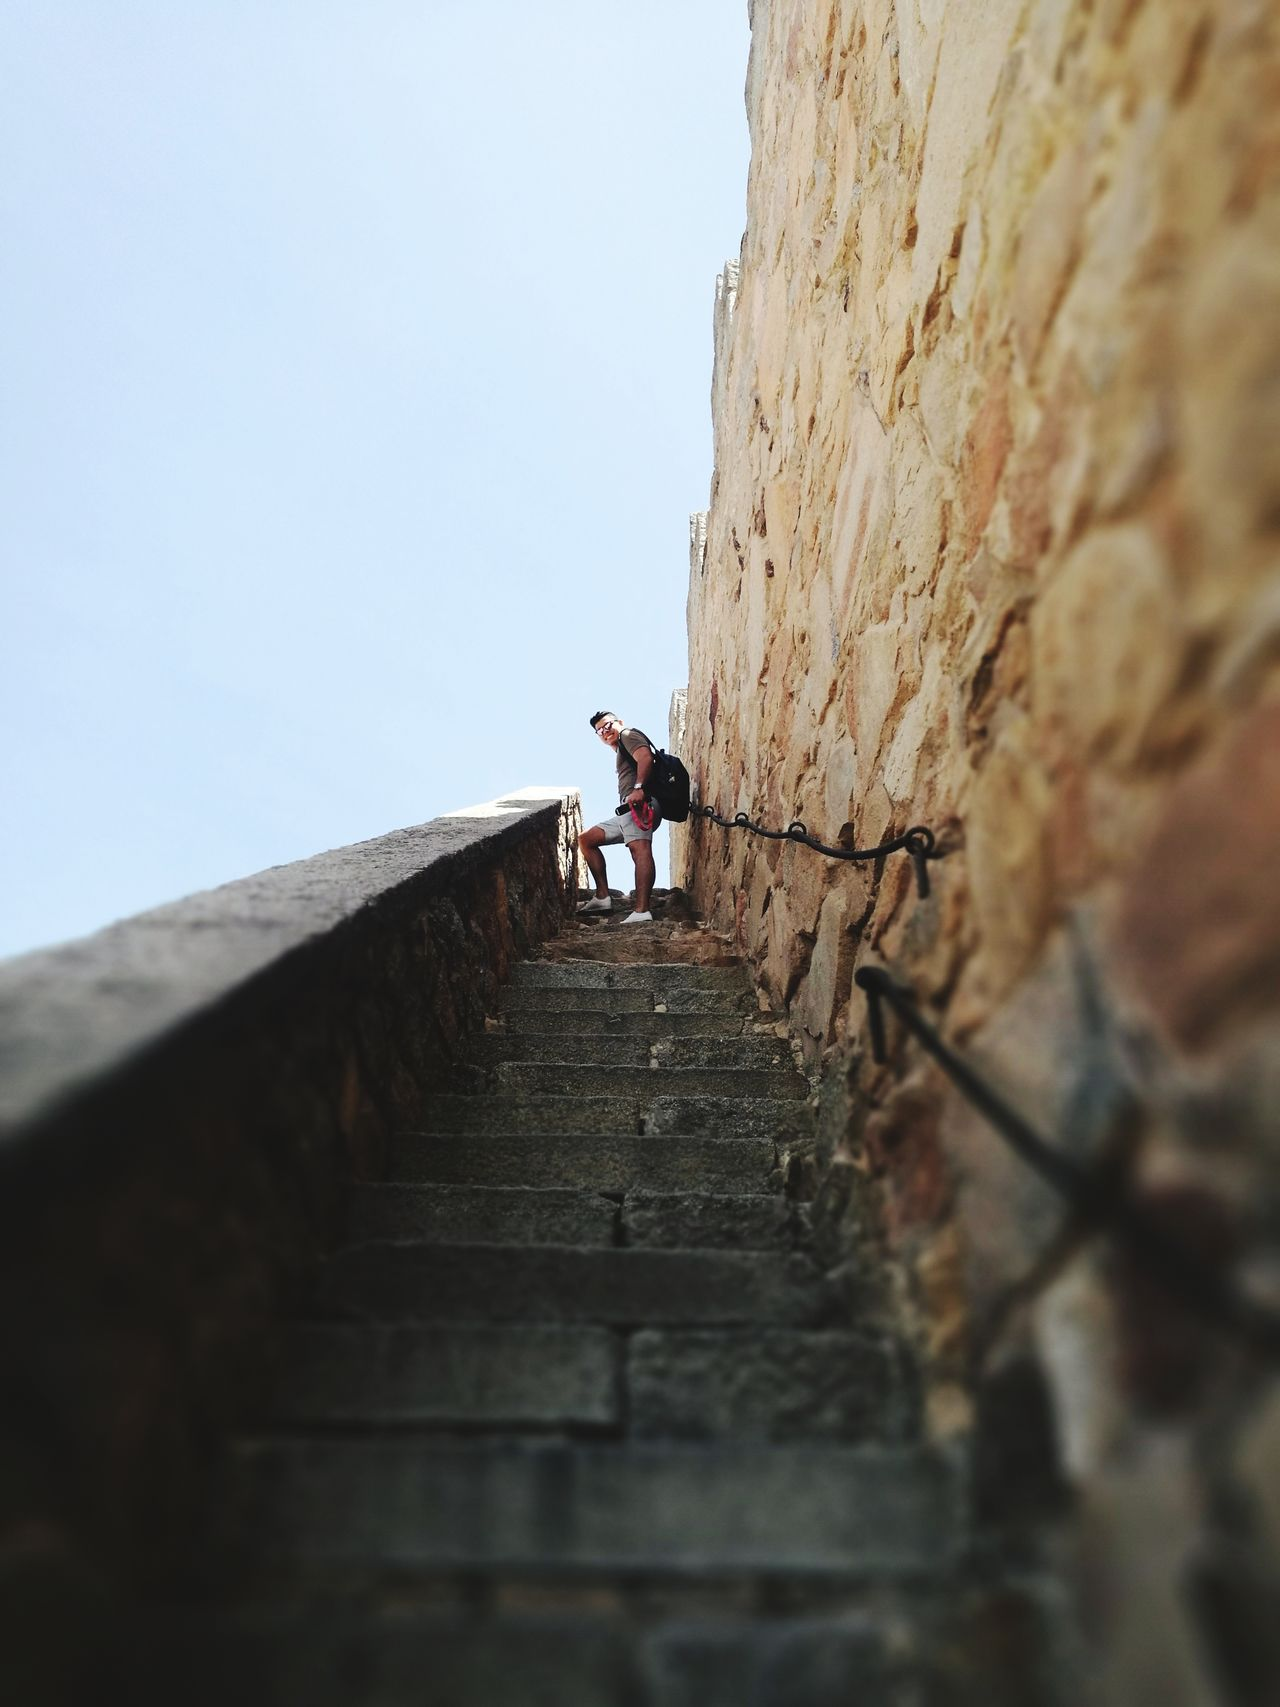 Murallas de Avila españa Full Length One Man Only Adults Only Only Men Climbing One Person Adult RISK Low Angle View Adventure Mid Adult Mid Adult Men People Staircase Steps And Staircases Steps Men Effort Day Clear Sky Travel Destinations Aventura Escaleras Spanish First Eyeem Photo